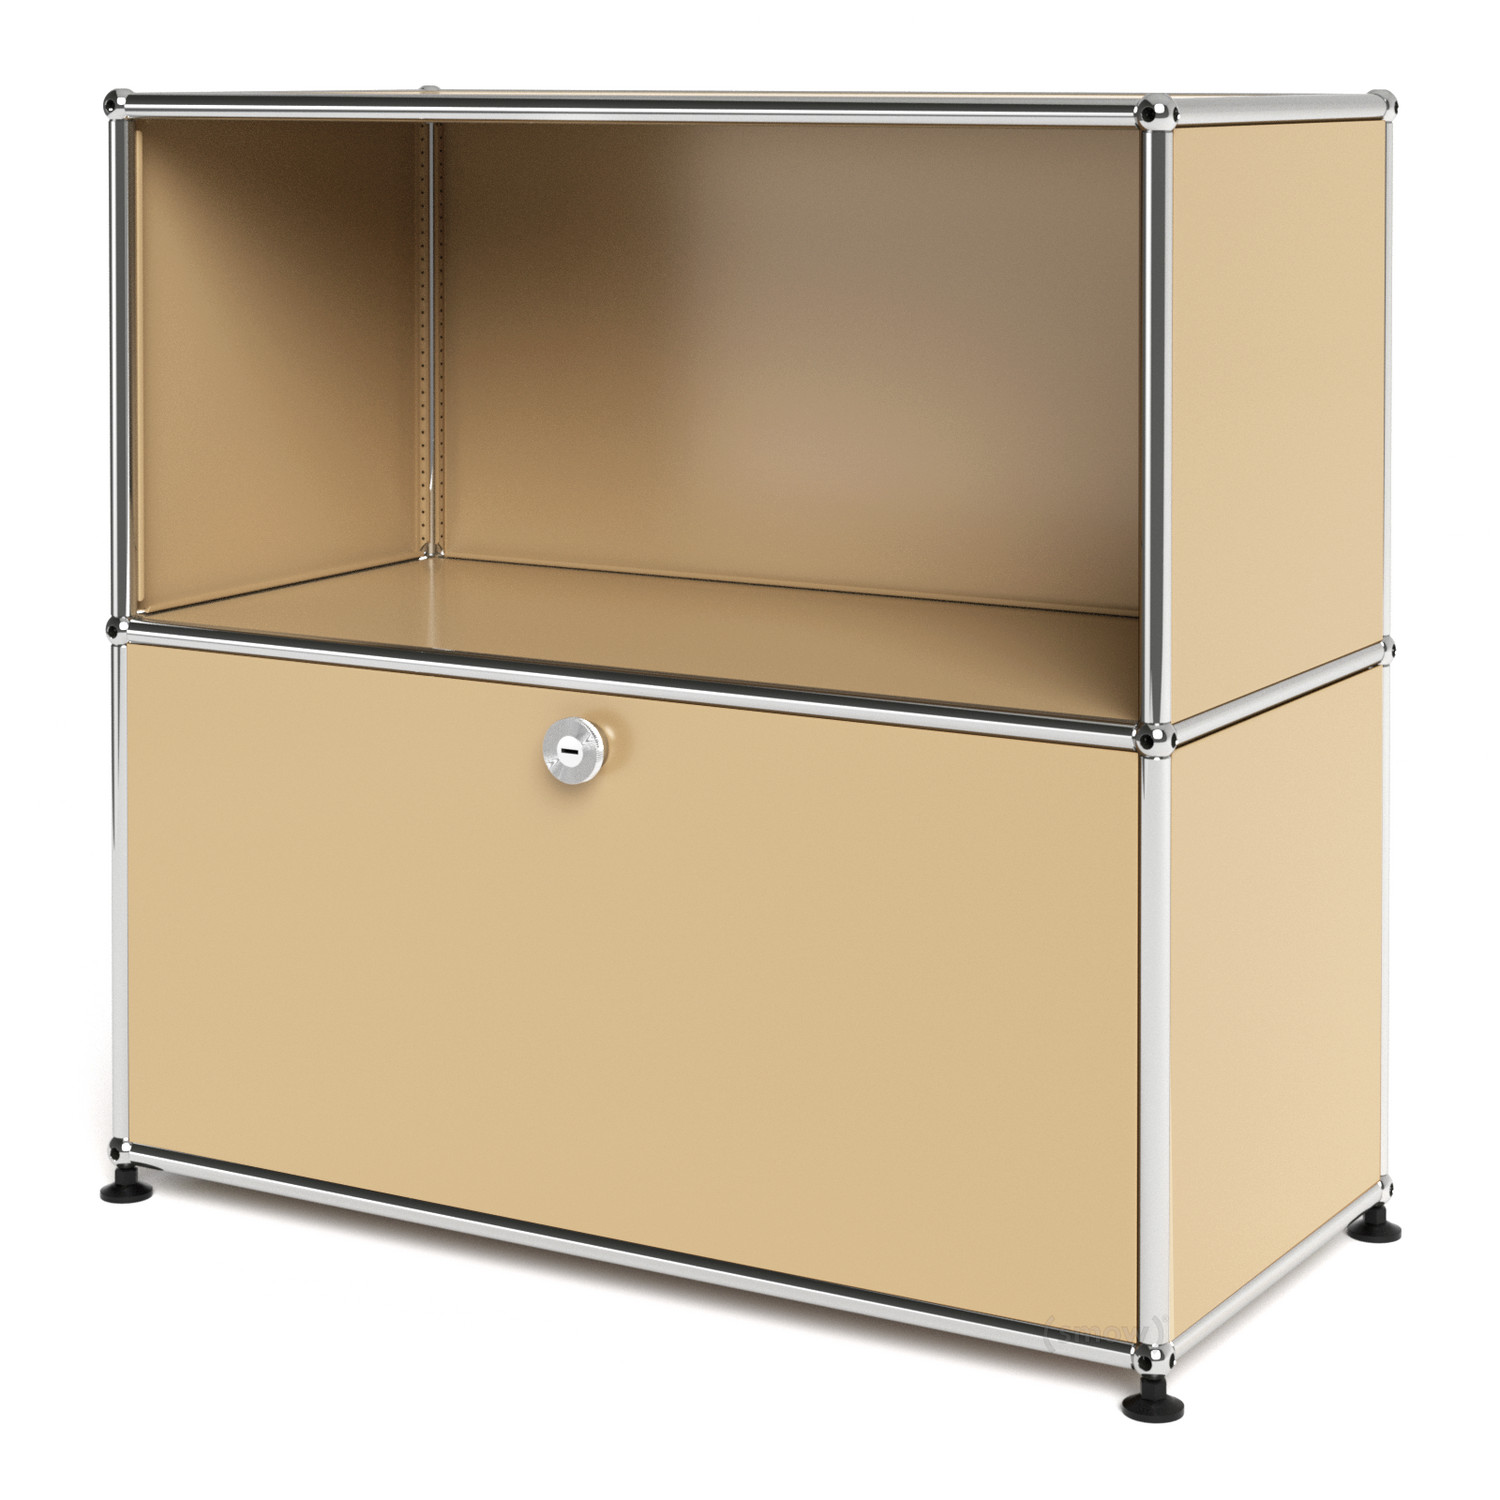 Usm haller sideboard m customisable usm beige open for Sideboard usm